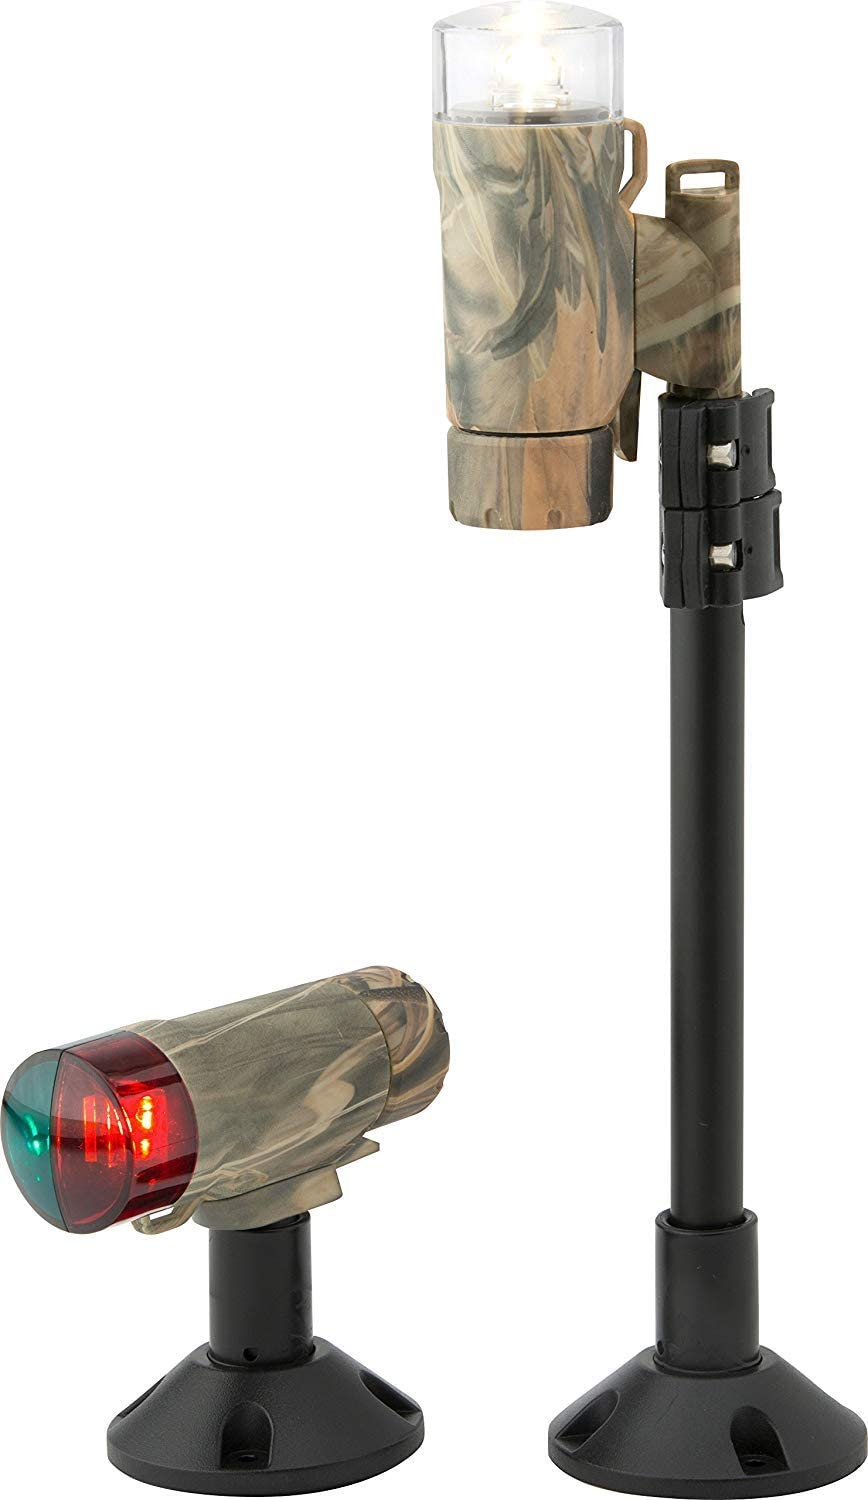 attwood 14193-7 Water-Resistant Deck Mount LED Navigation Light Kit, Real Tree Max-4 Camouflage Finish